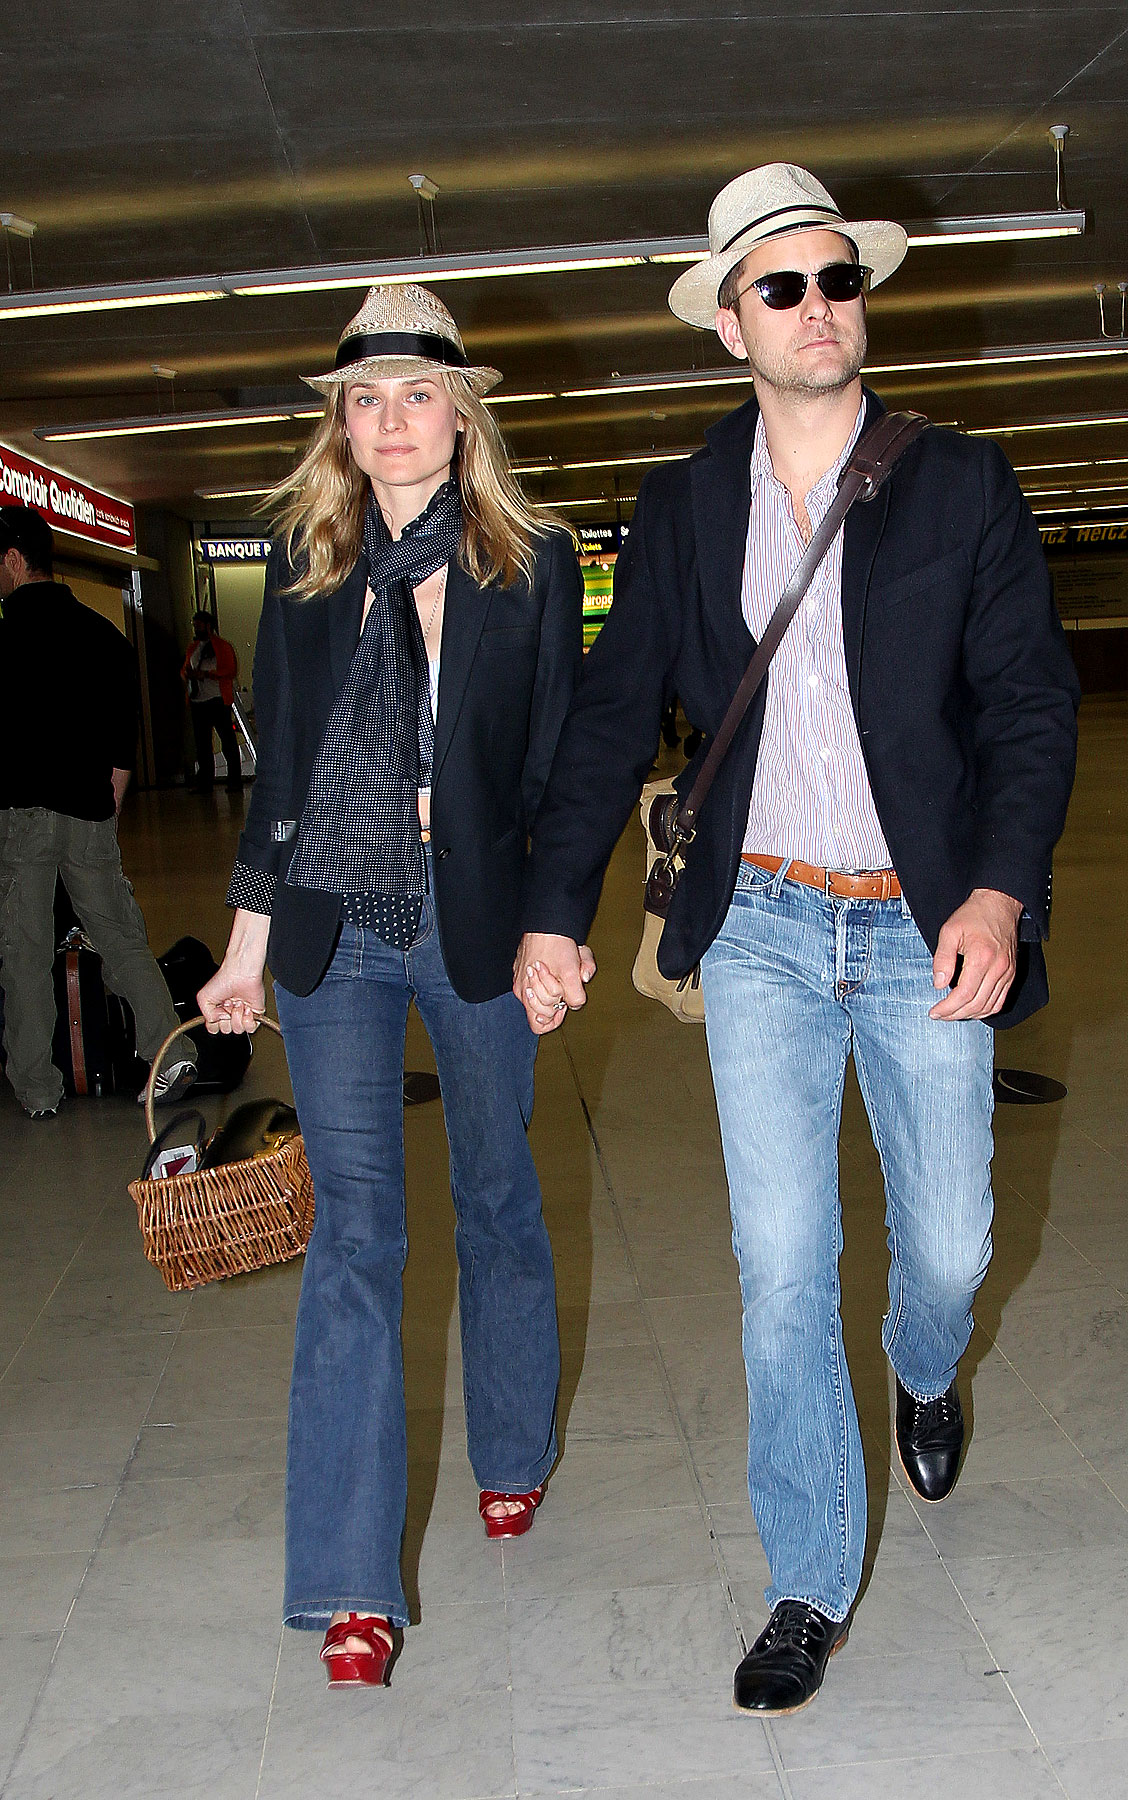 Diane Kruger & Joshua Jackson Are Airport Twinsies (PHOTOS)